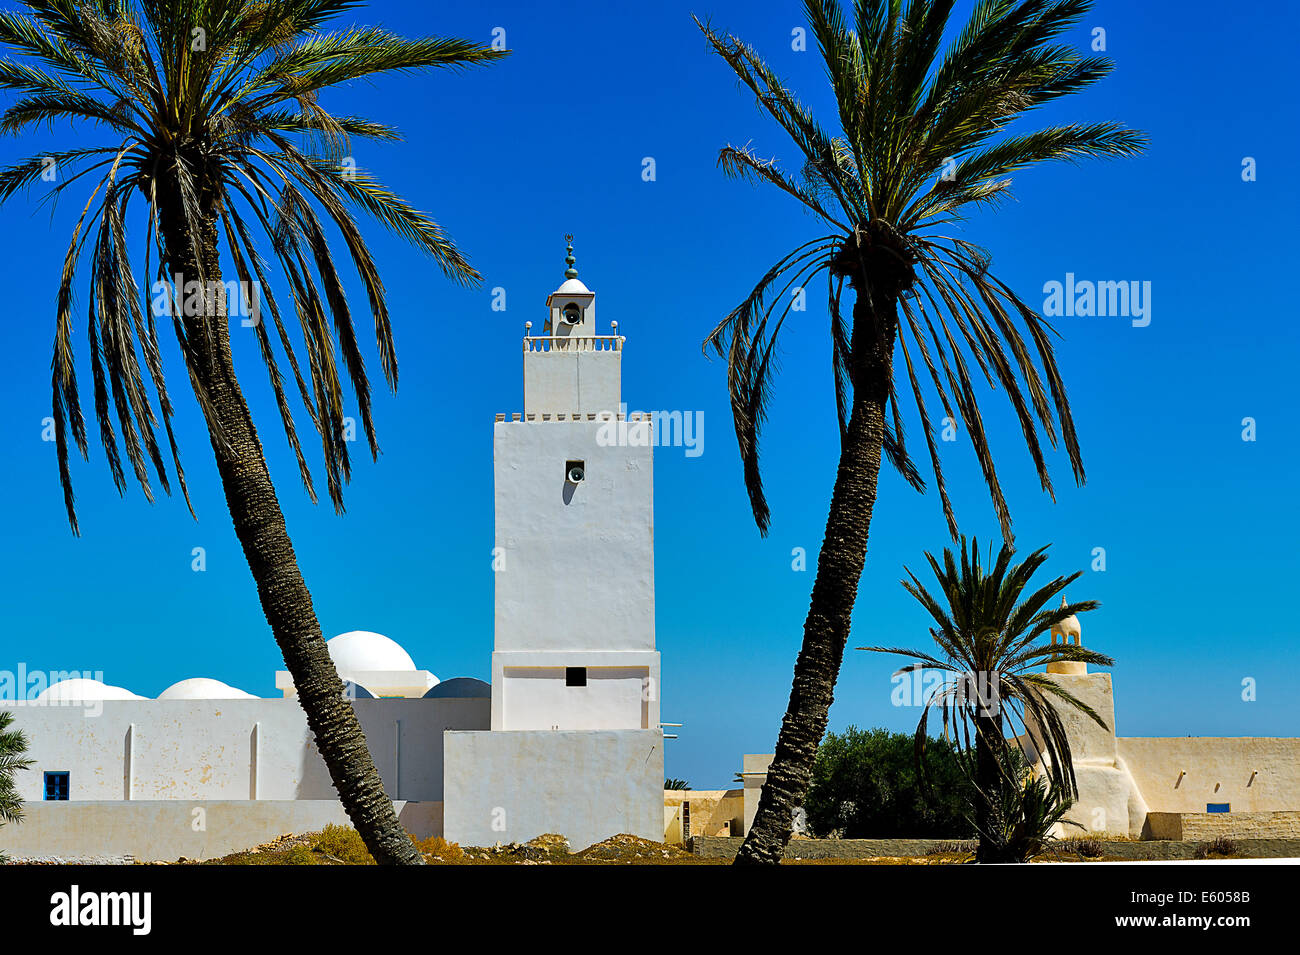 Africa, North Africa, Maghreb, South Tunisia, Djerba island. Guellala. Mosque. - Stock Image